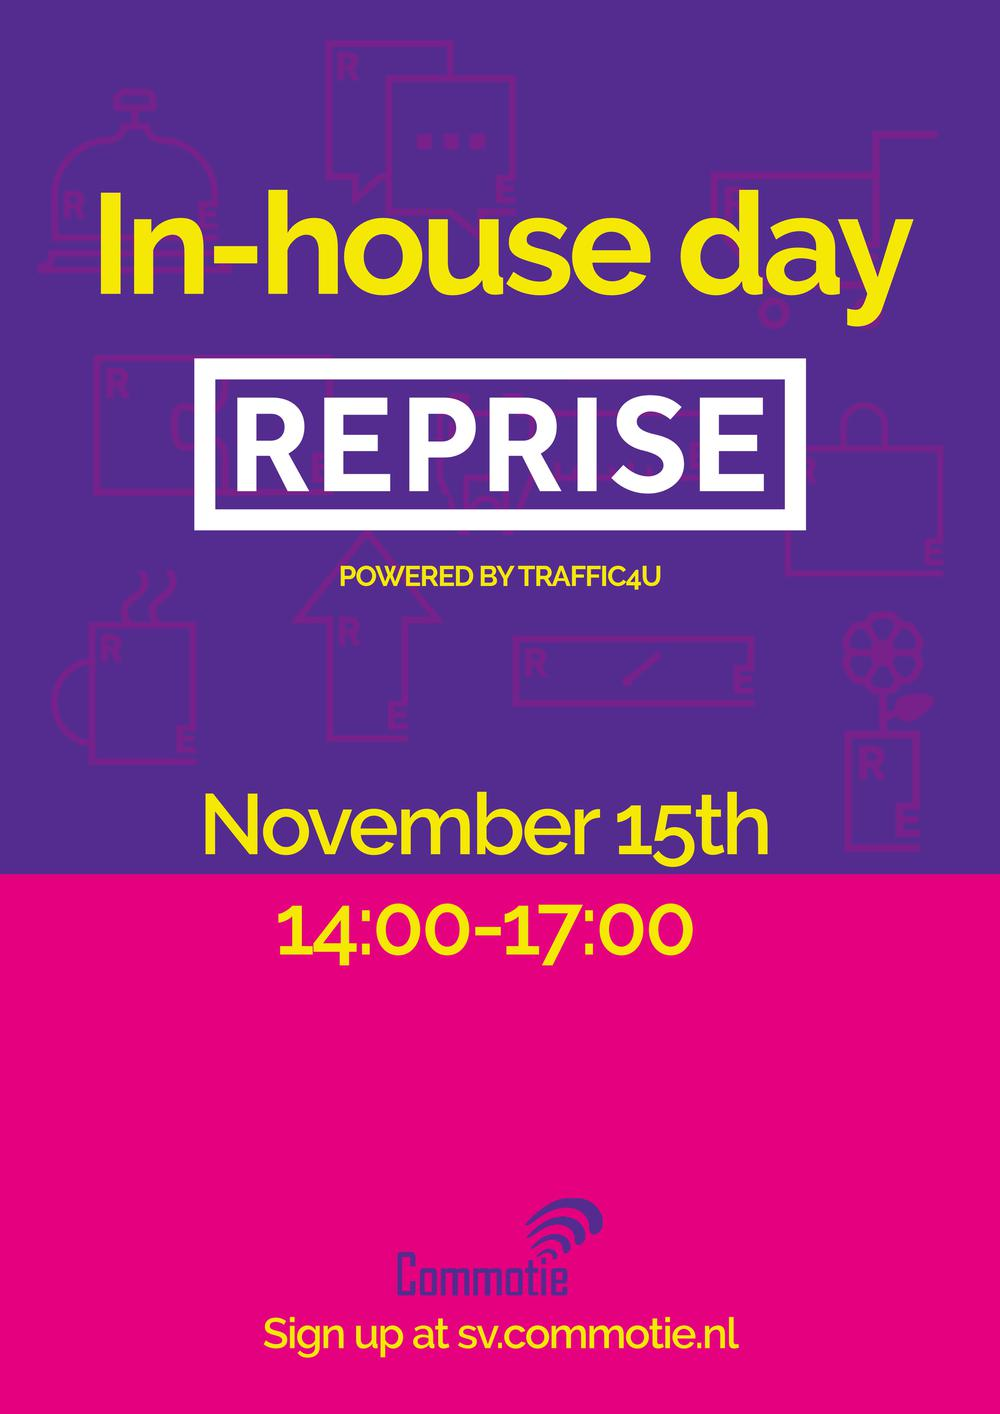 In-house day @ Reprise